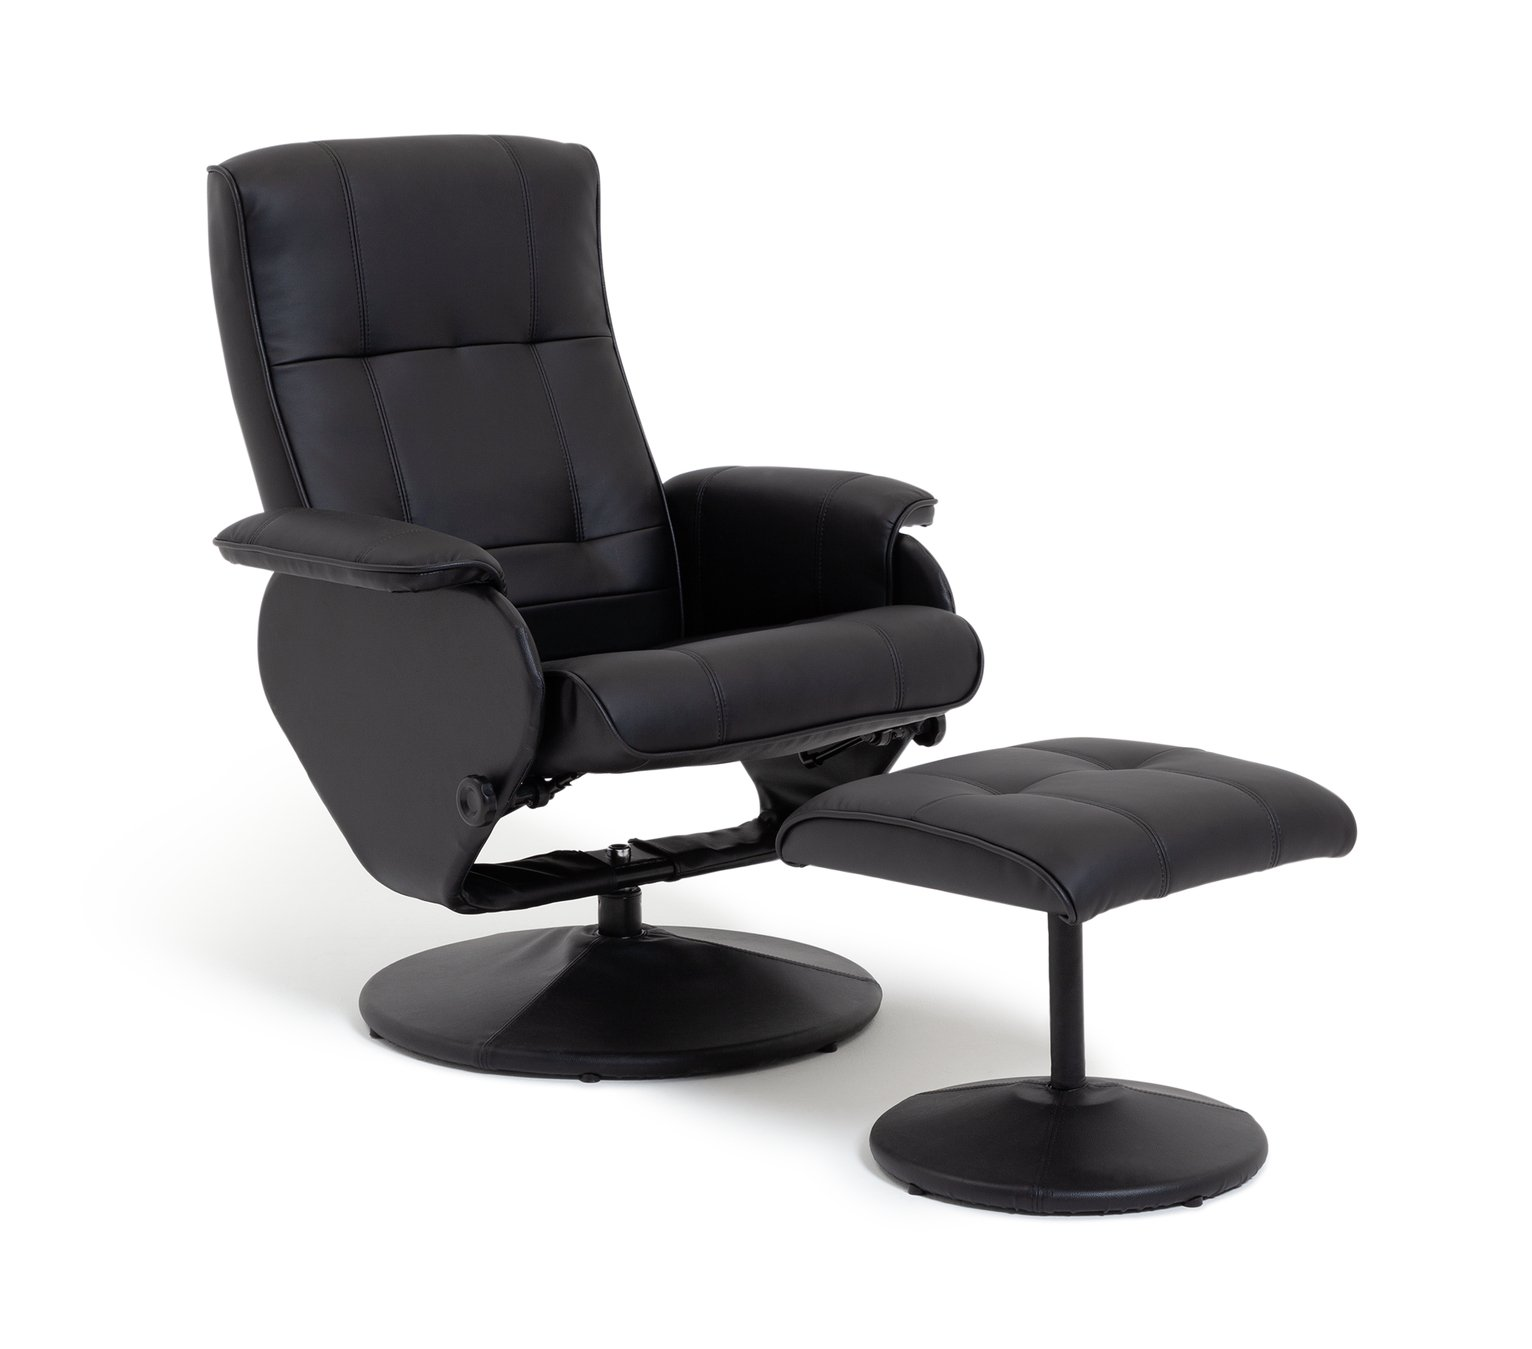 Argos Home Rowan Faux Leather Swivel Chair & Footstool Black